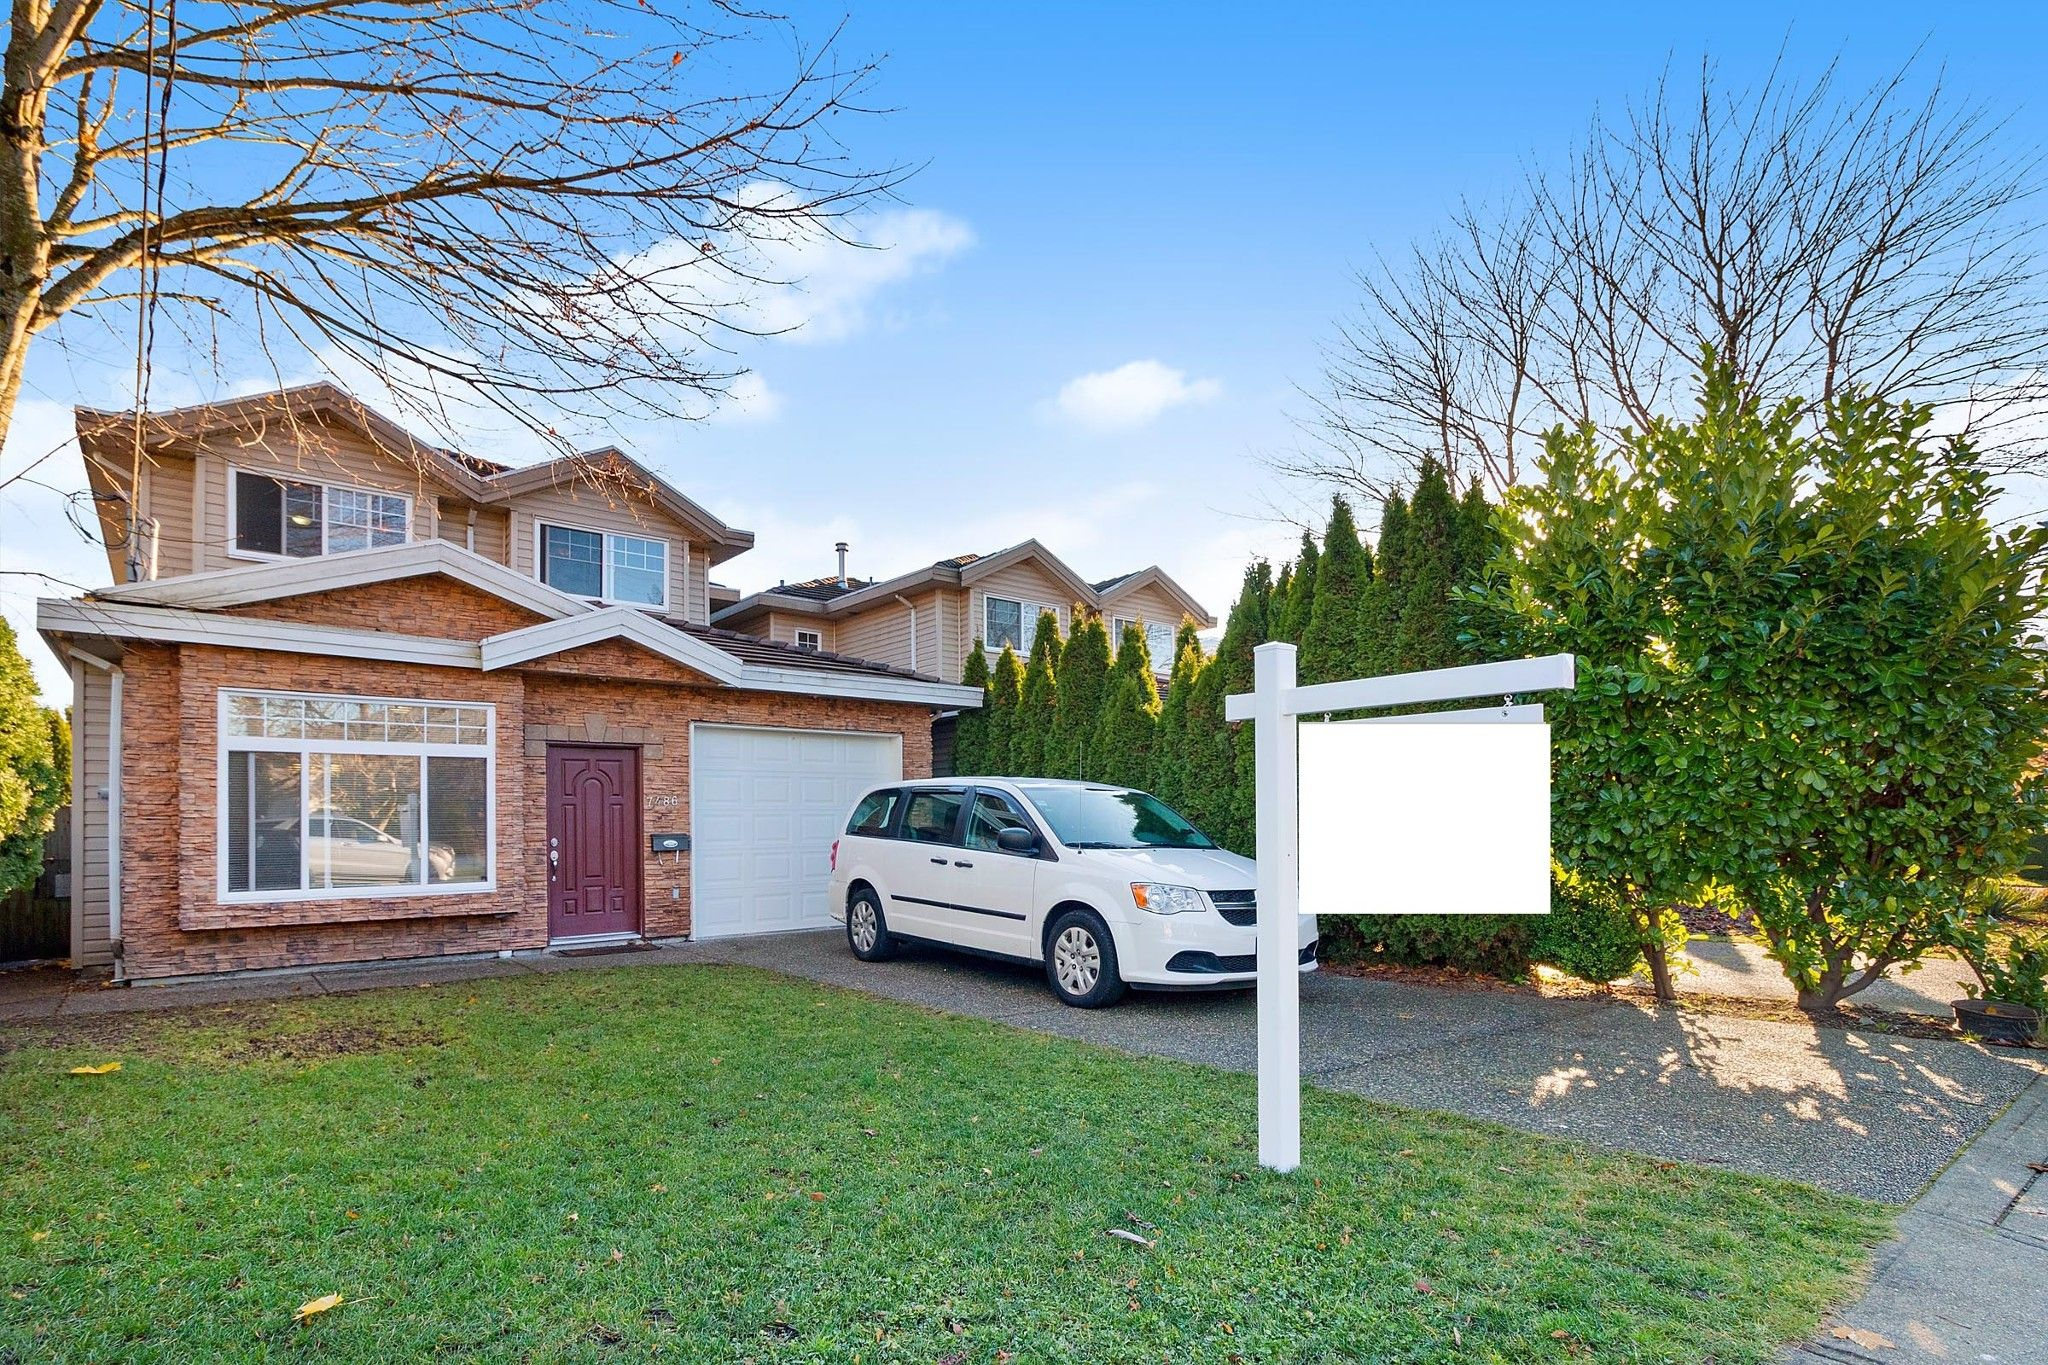 Main Photo: 7486 ELWELL Street in Burnaby: Highgate 1/2 Duplex for sale (Burnaby South)  : MLS®# R2520924